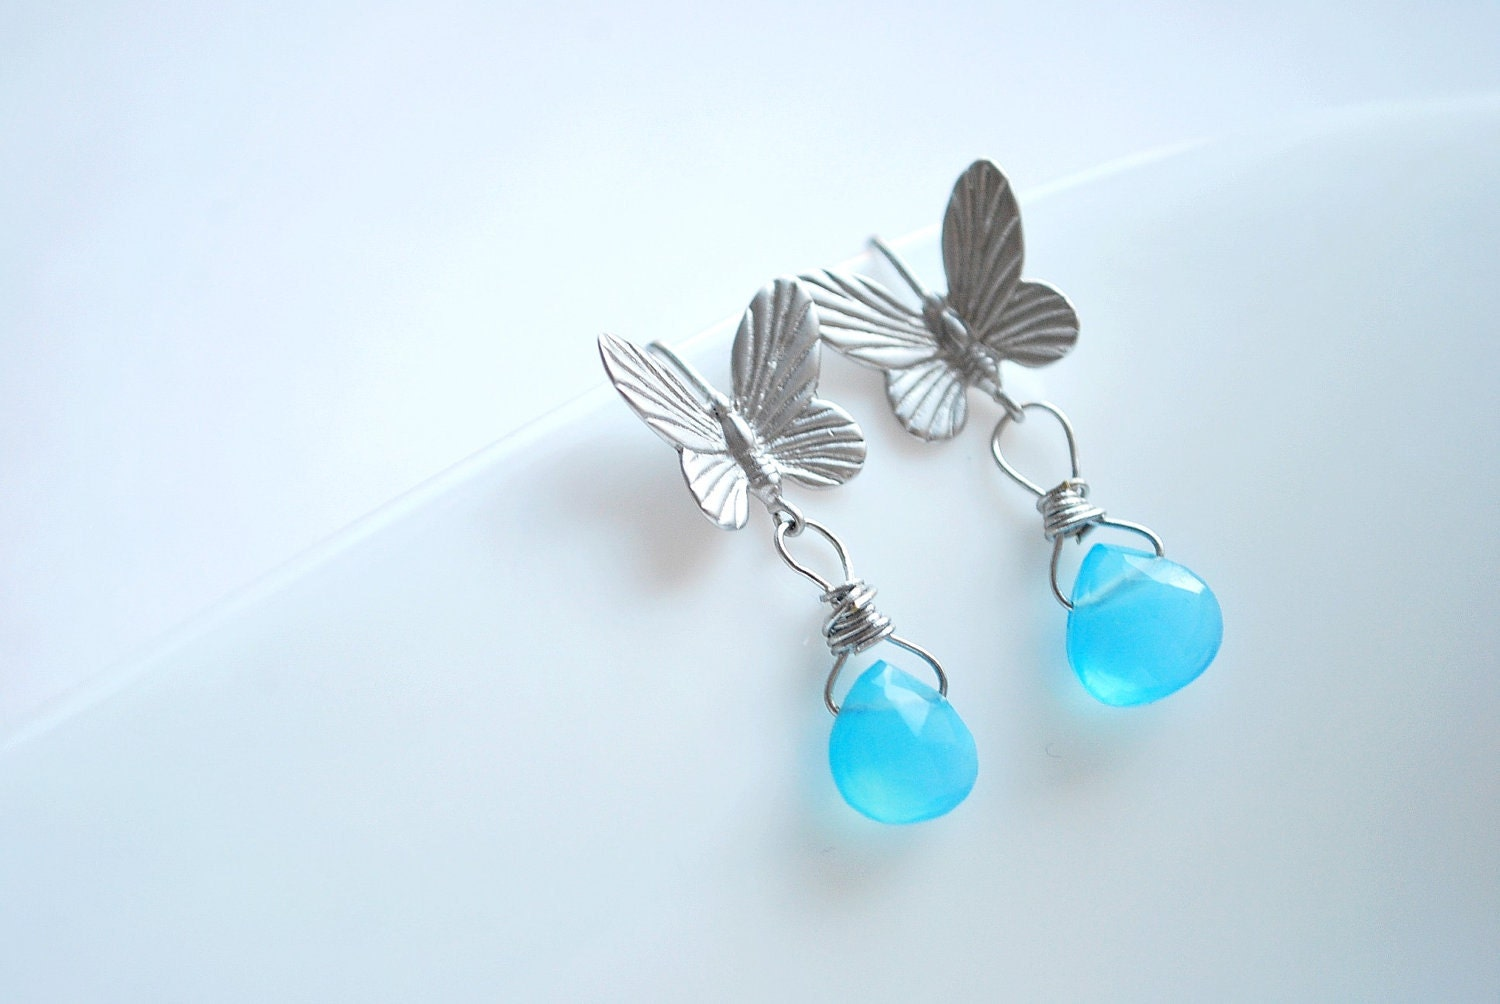 Little blue - delicate butterfly earrings with a dangling chalcedony drop - romantic gemstone earrings perfect for summer or spring - silver